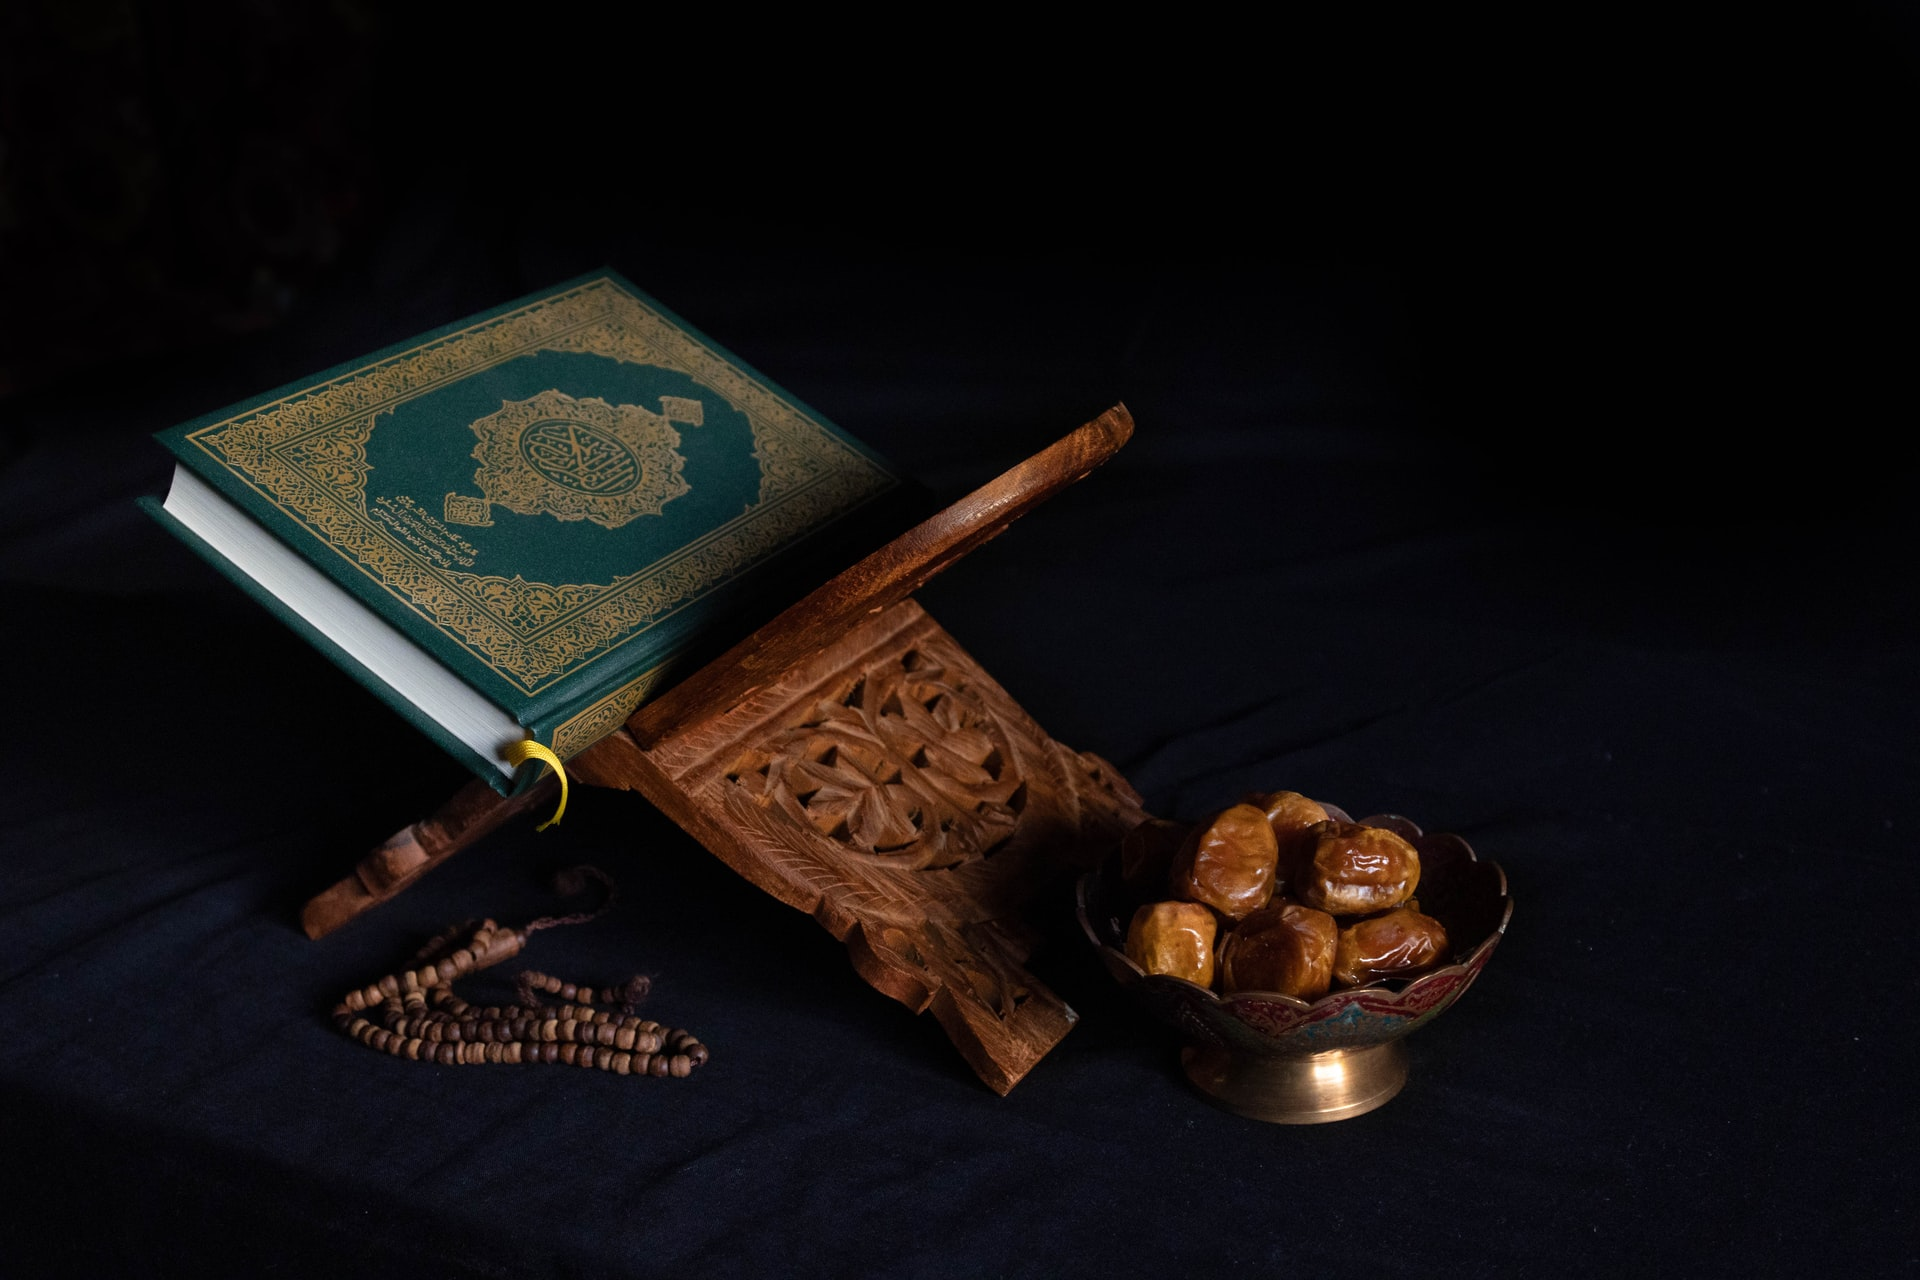 Quran and Dates by Abdullah Arif on Unsplash